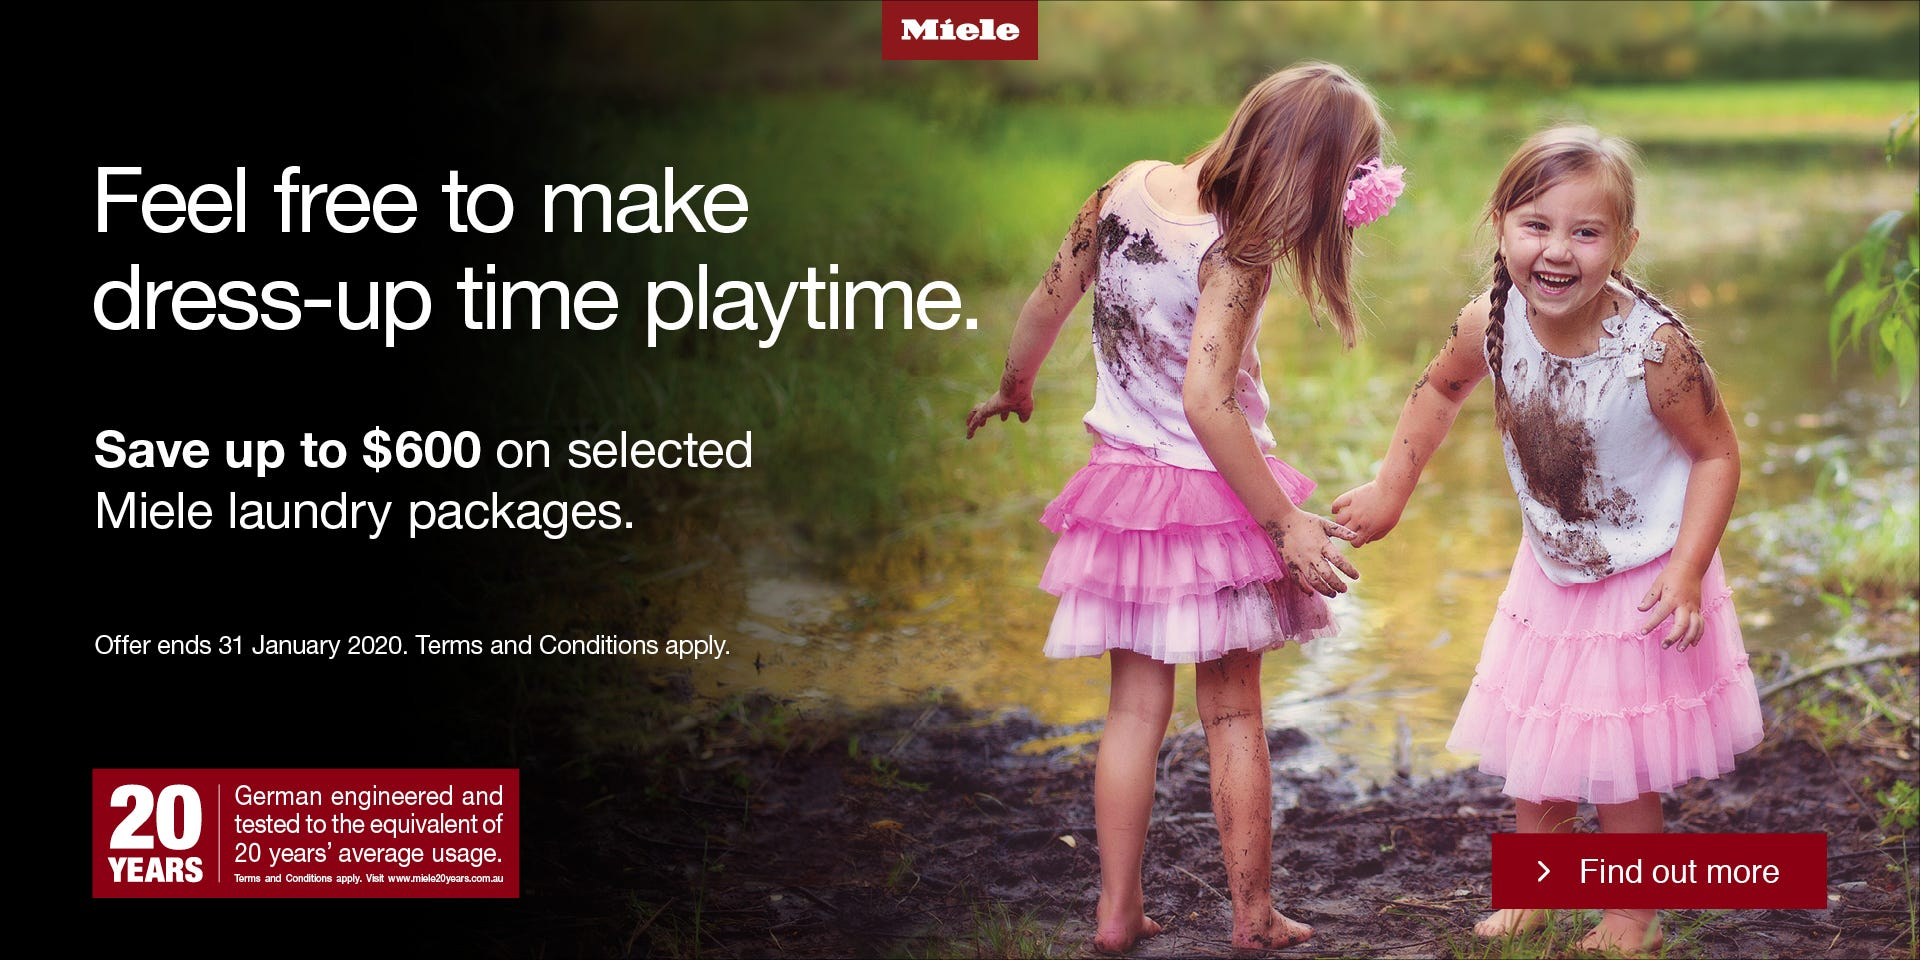 Save up to $600 on selected Miele Laundry Packages. Conditions apply - ENDS 31/01/20